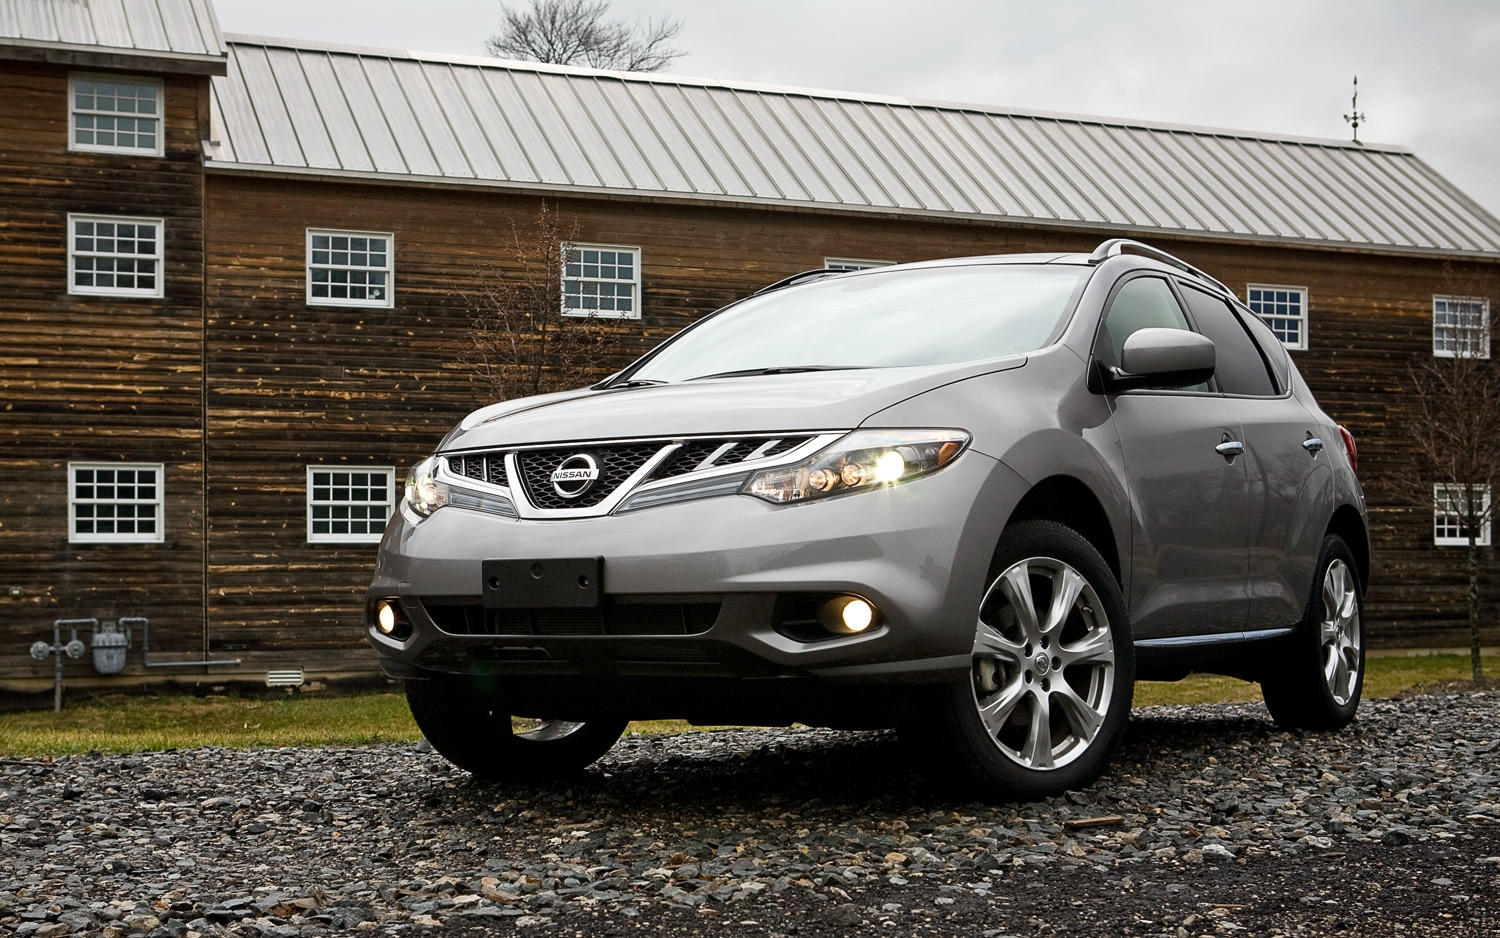 2012 Nissan Murano LE AWD Front Left View